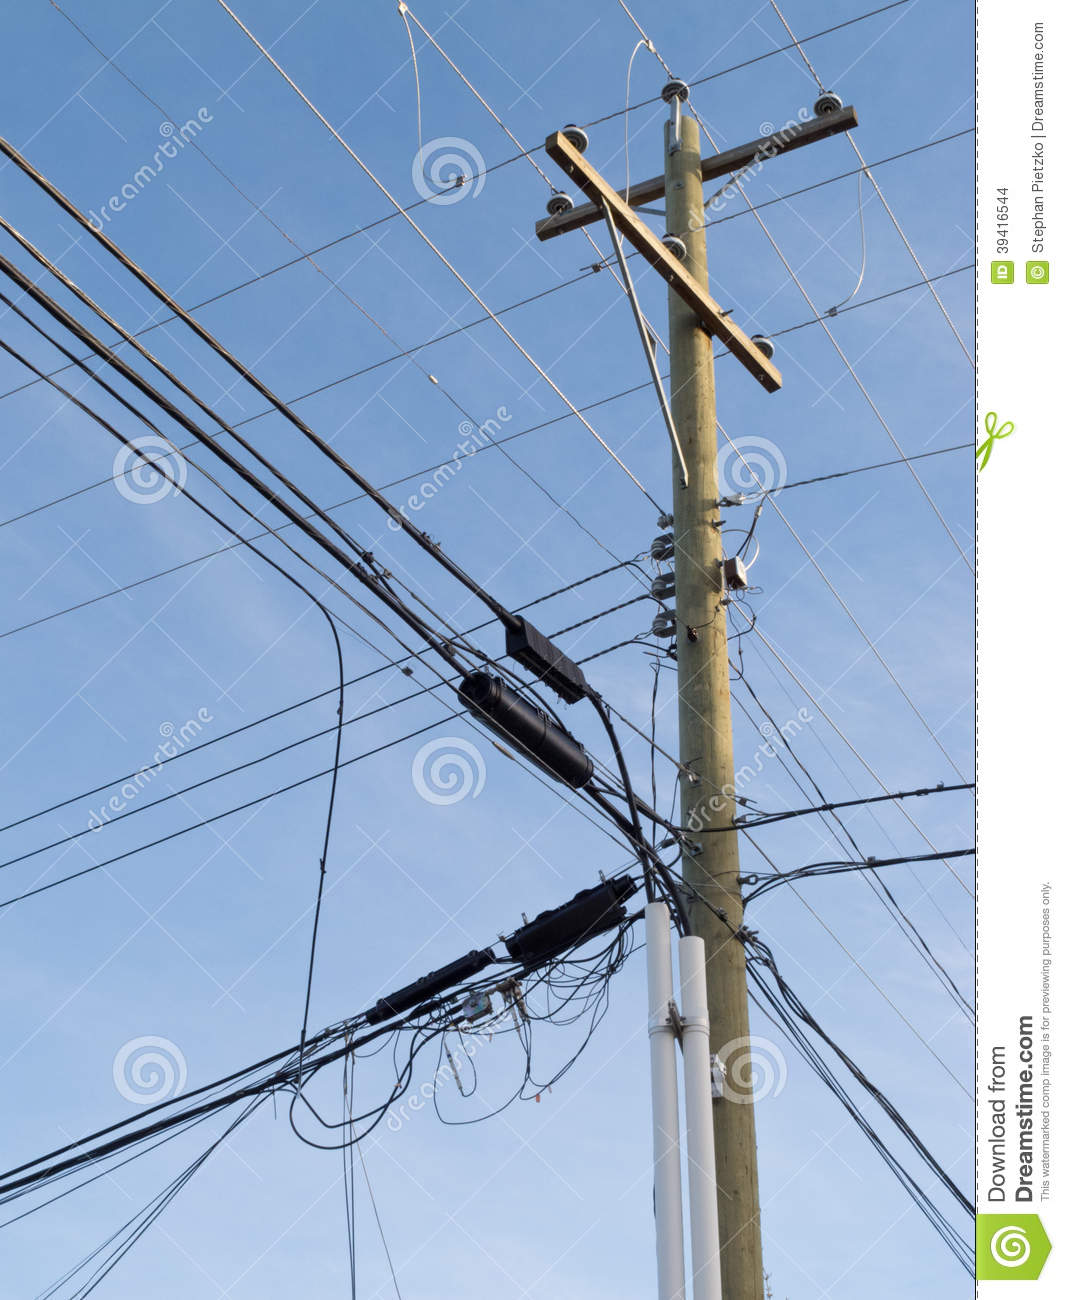 Electric Poles Power Lines : Wooden pole confusing power cable phone line mess stock